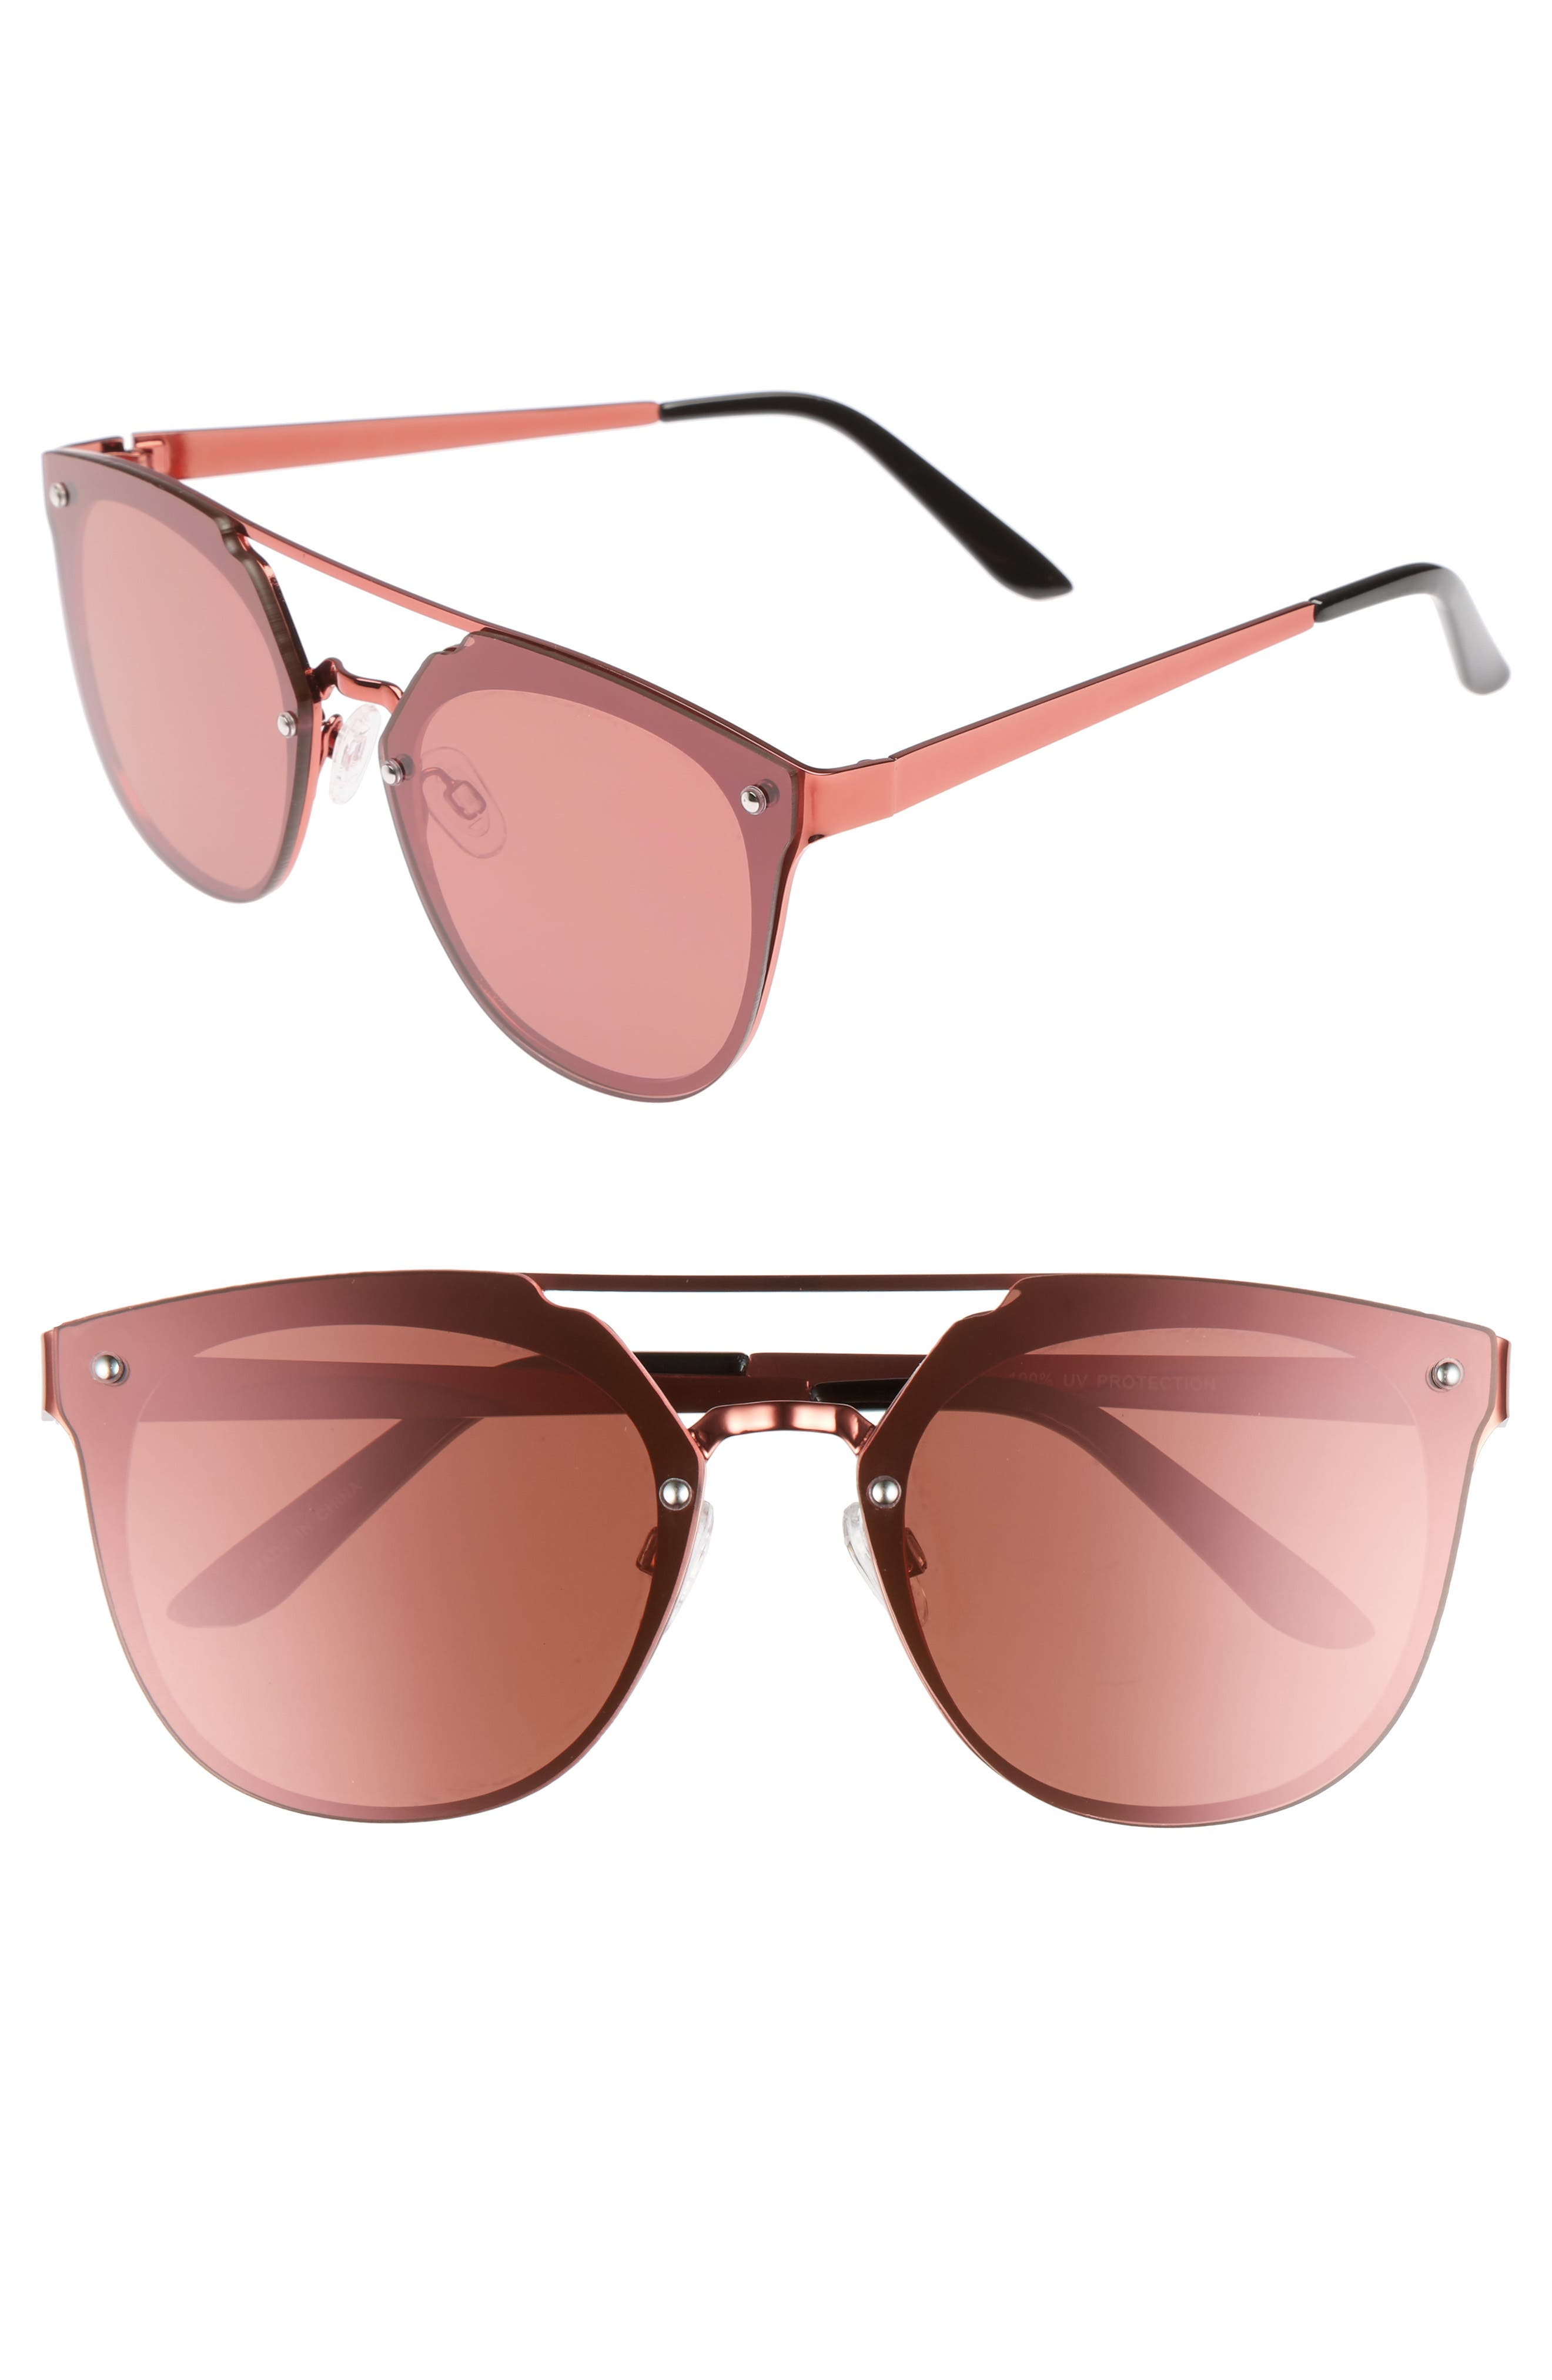 Mirrored Aviator Sunglasses,                             Main thumbnail 1, color,                             Pink/ Pink